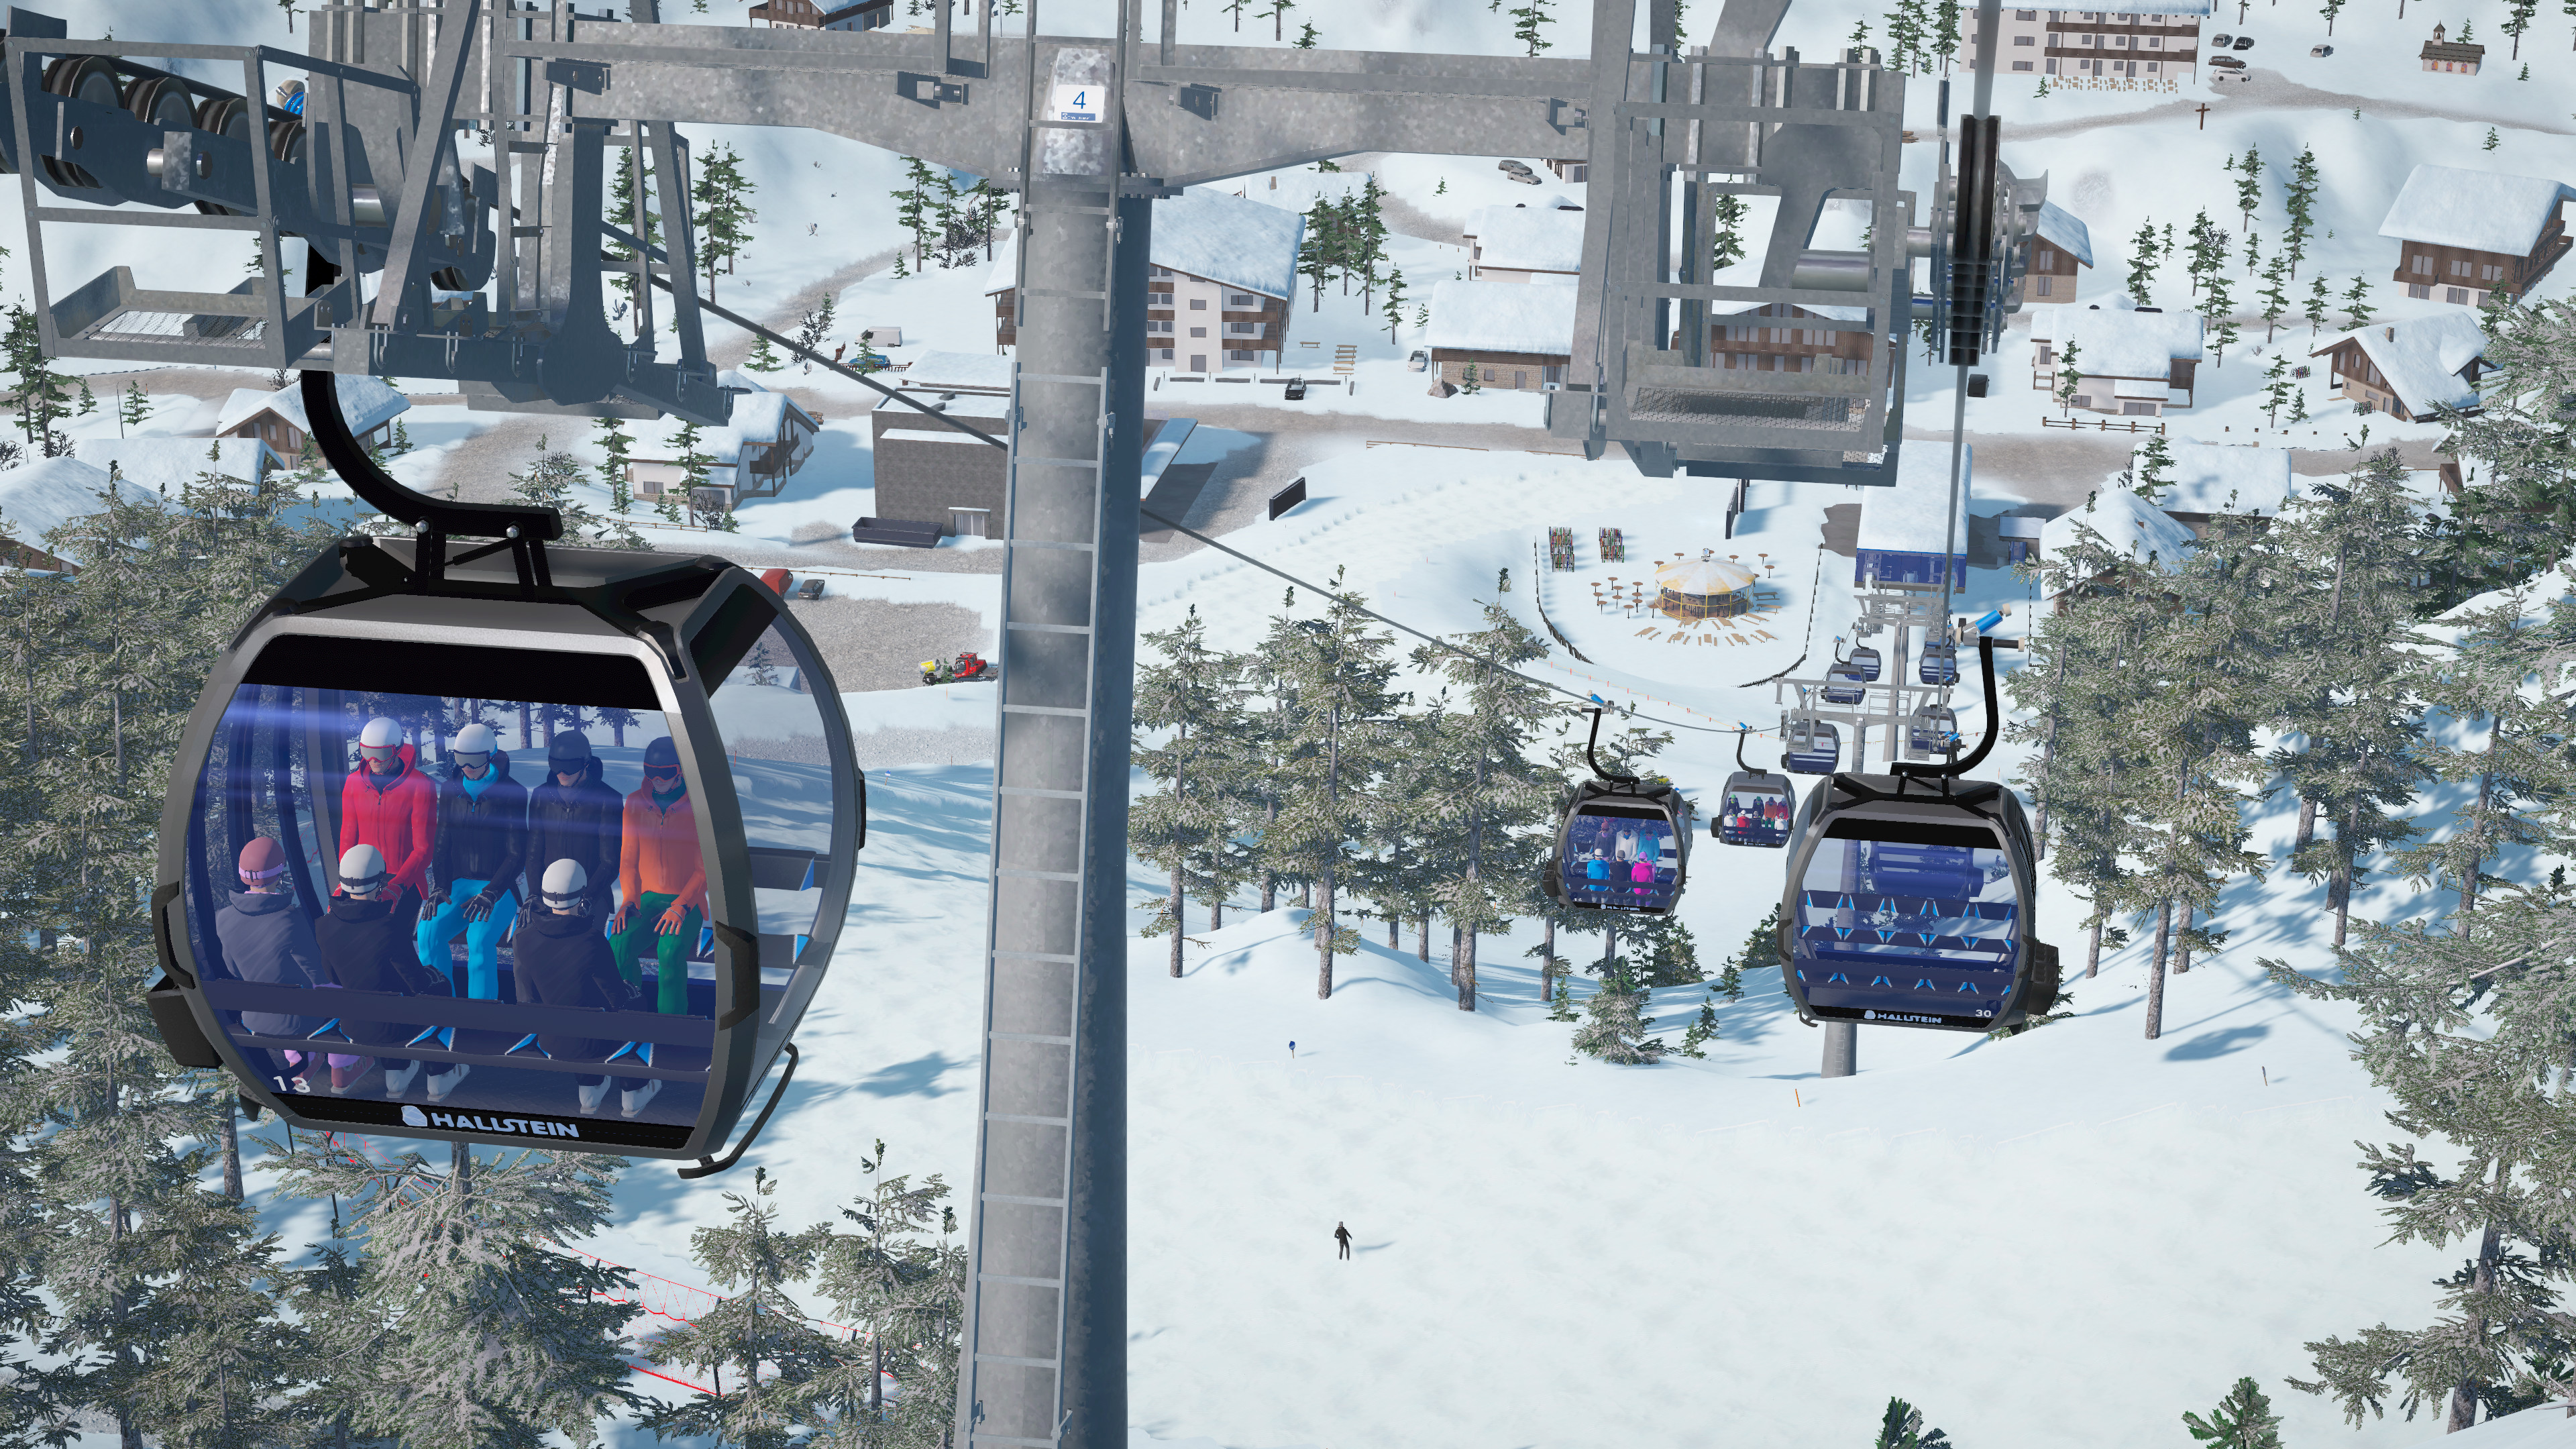 WINTER RESORT SIMULATOR SEASON 2 FREE DOWNLOAD